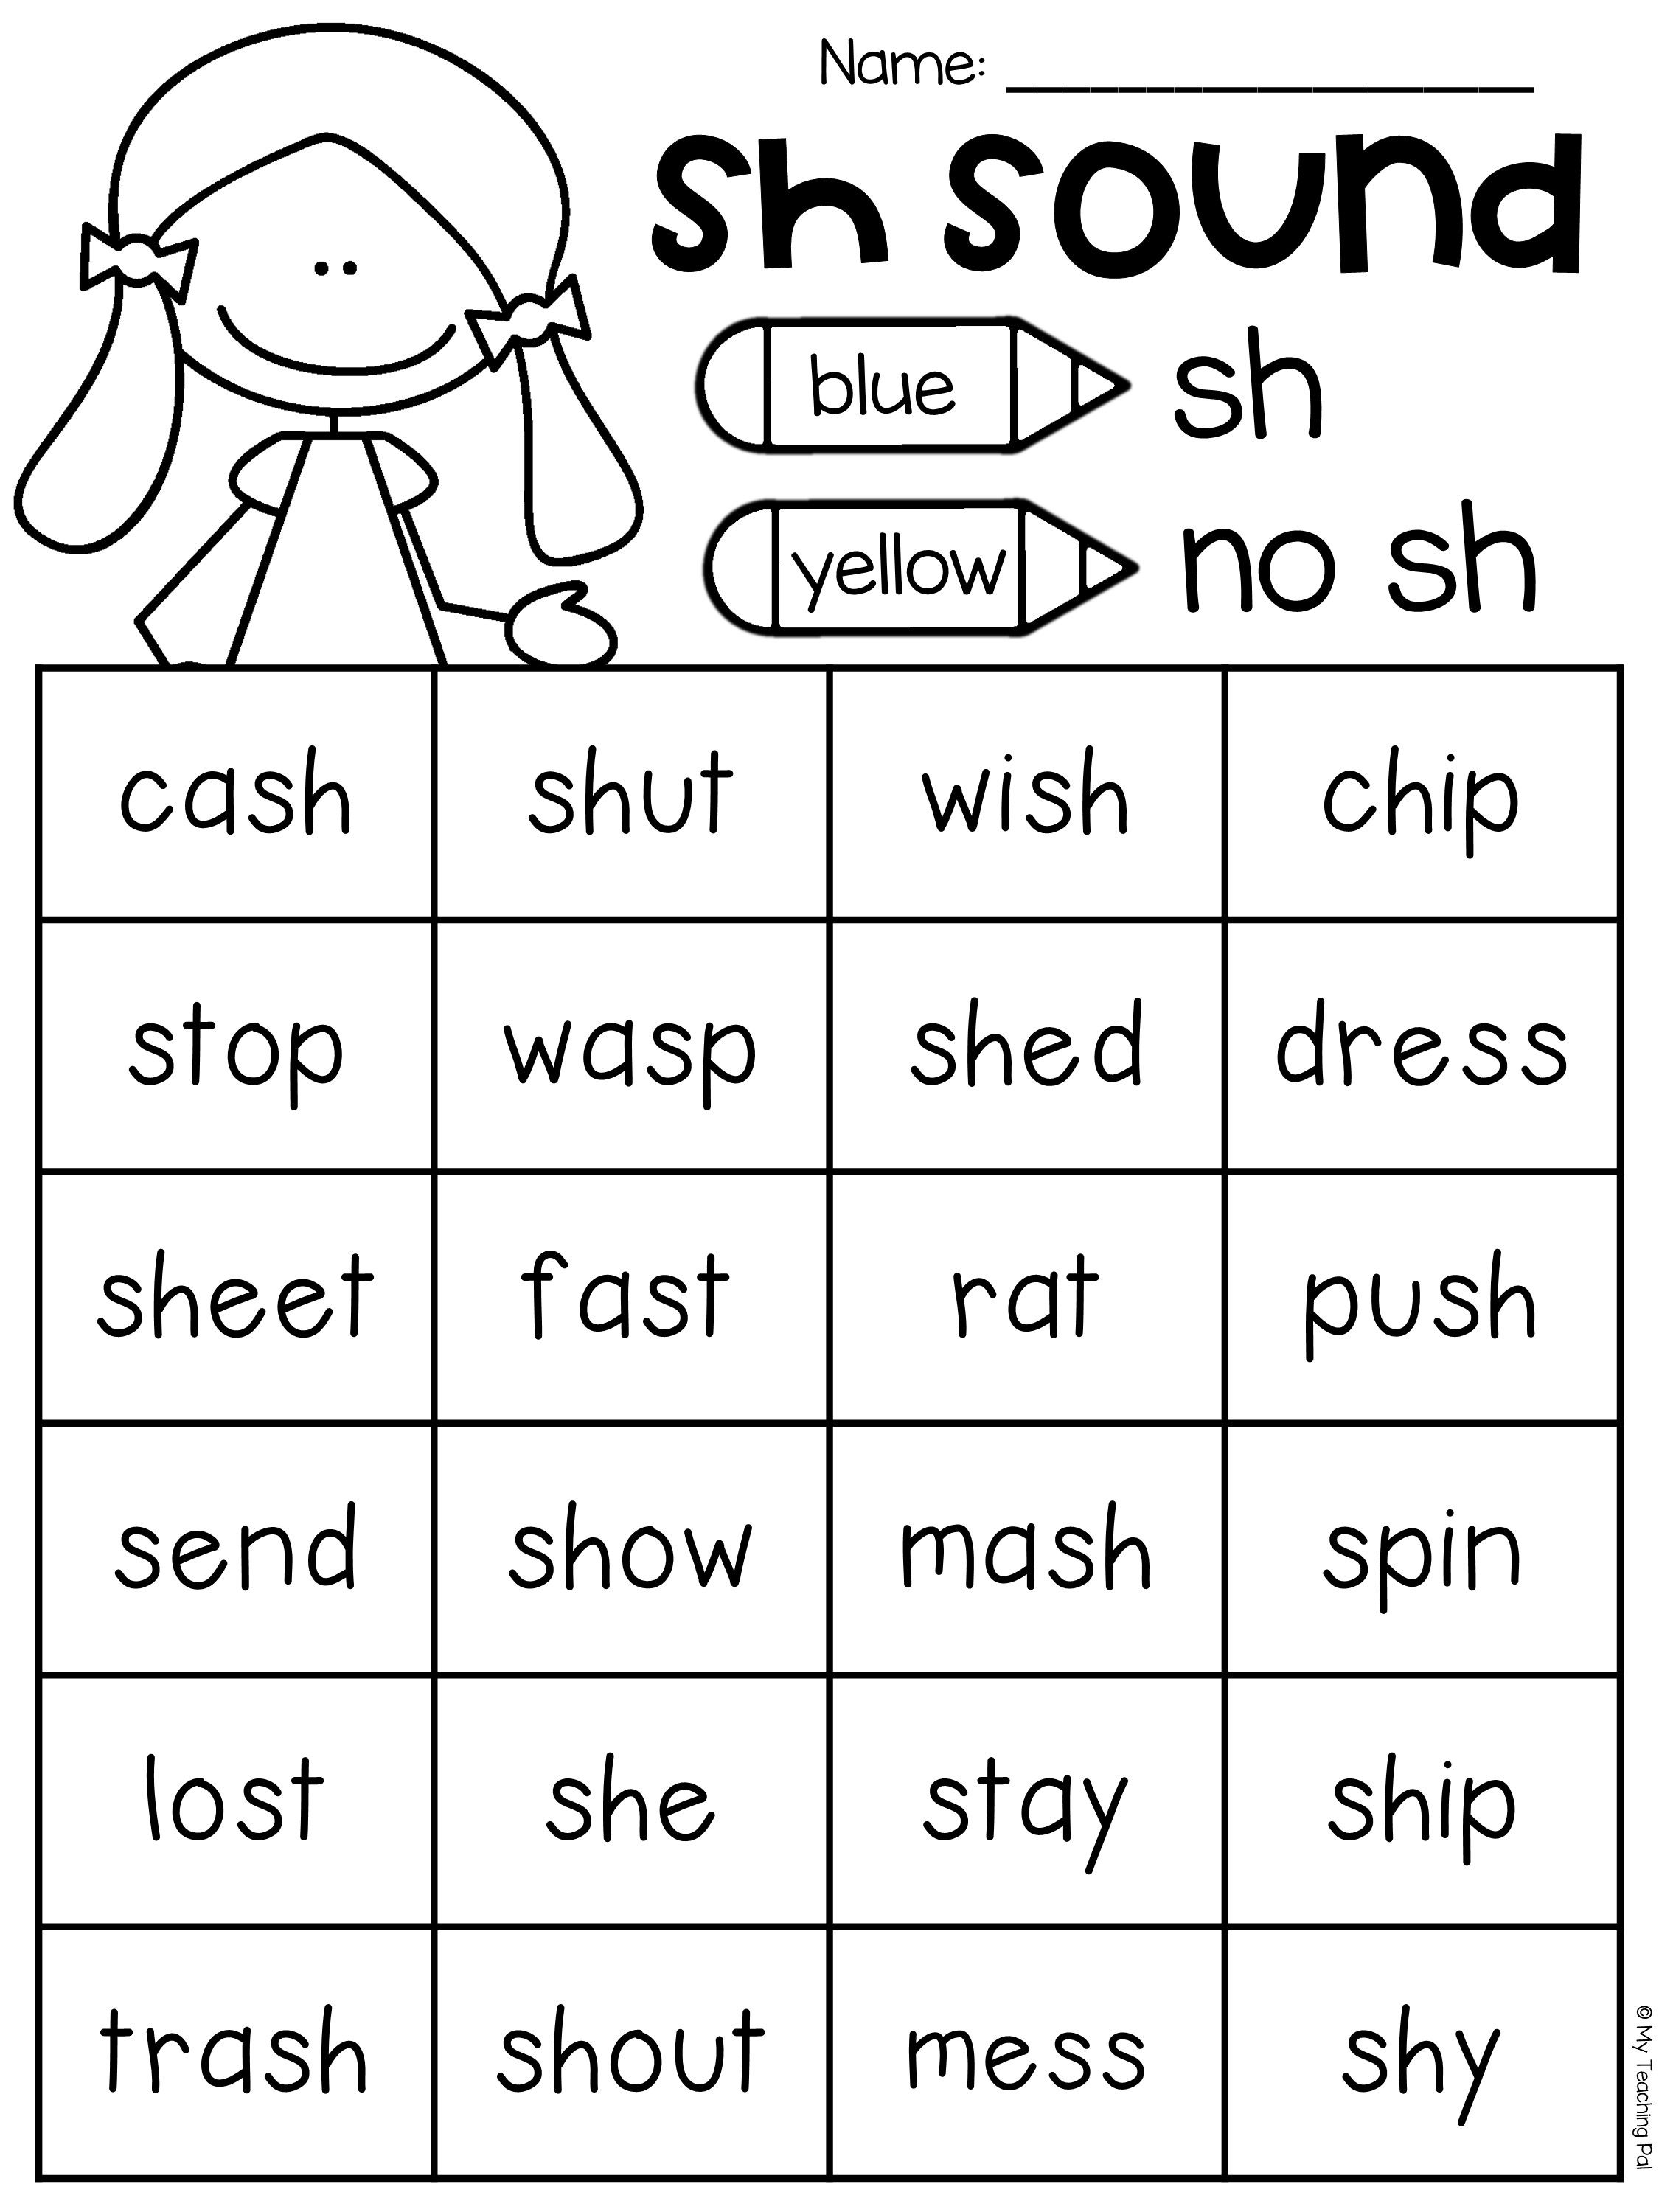 Teach Child How To Read Sh Printable Worksheets